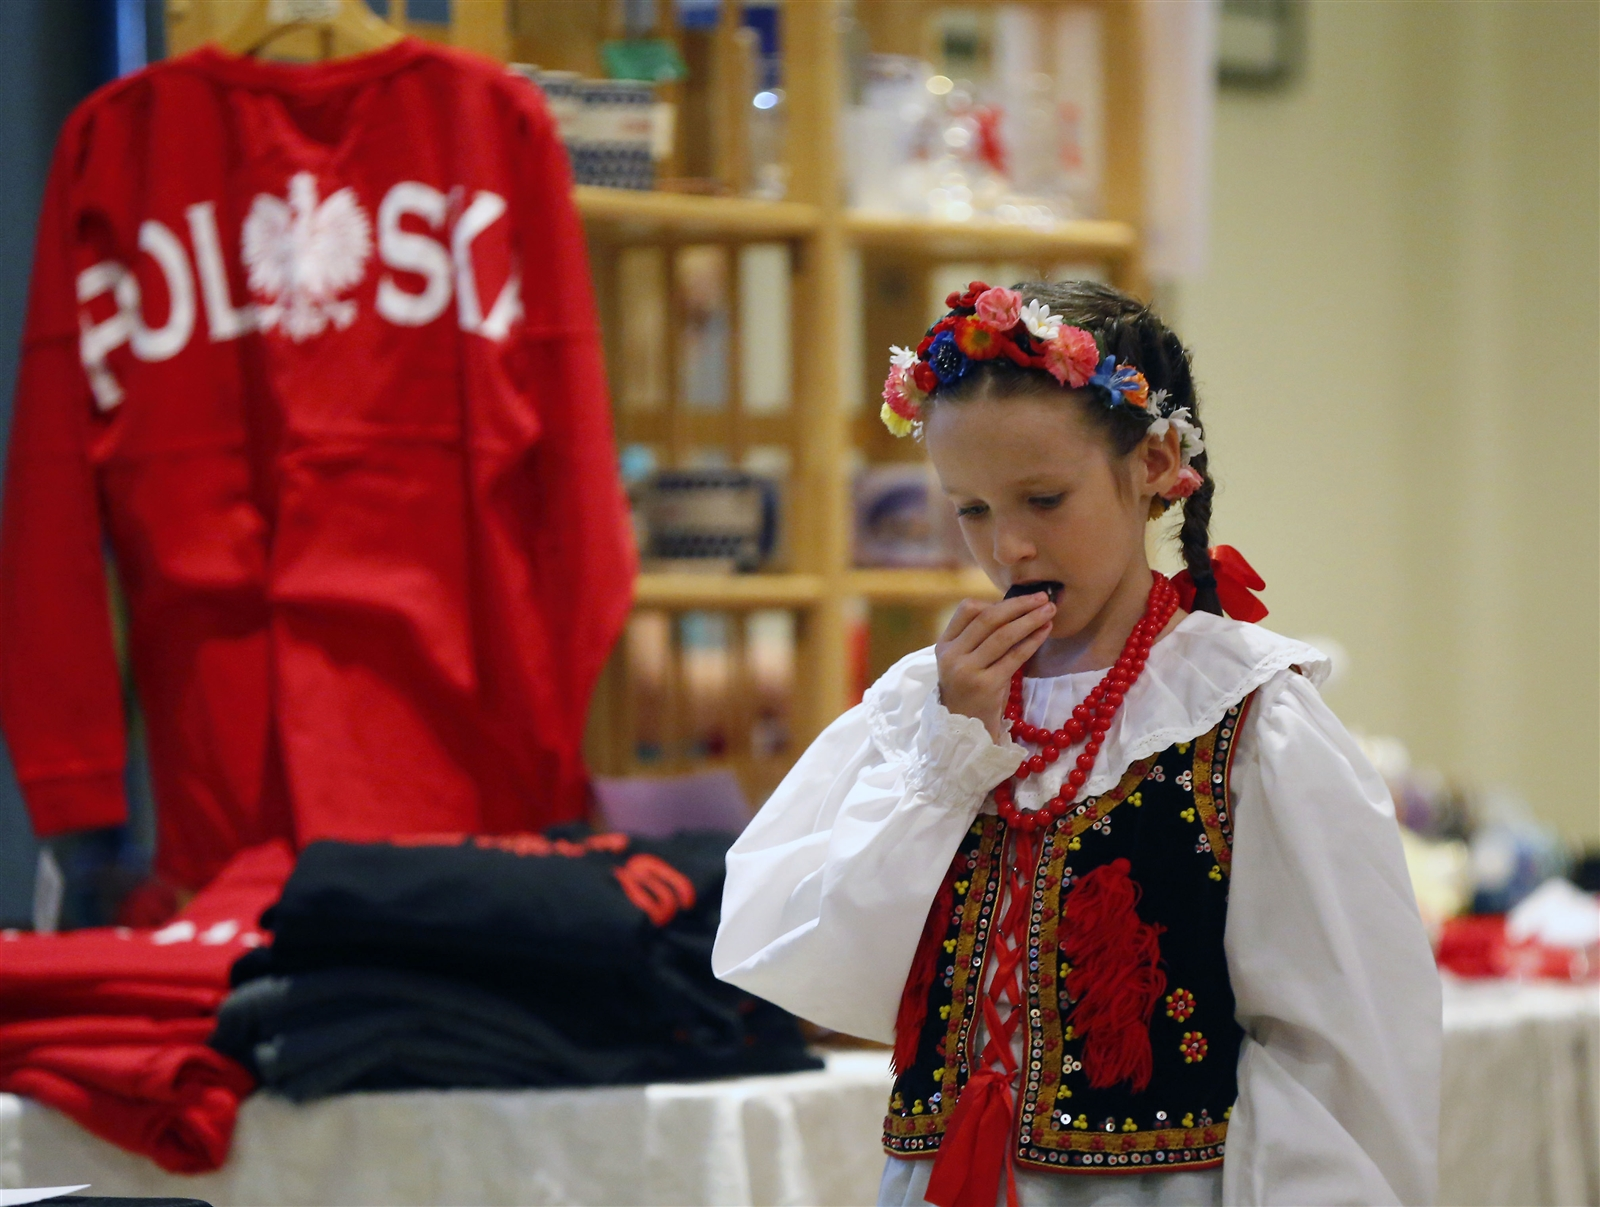 Genevieve Micelli enjoys a sweet treat during a Celebration of Polish Women event at the Holy Mother of the Rosary Parish hall in Lancaster.